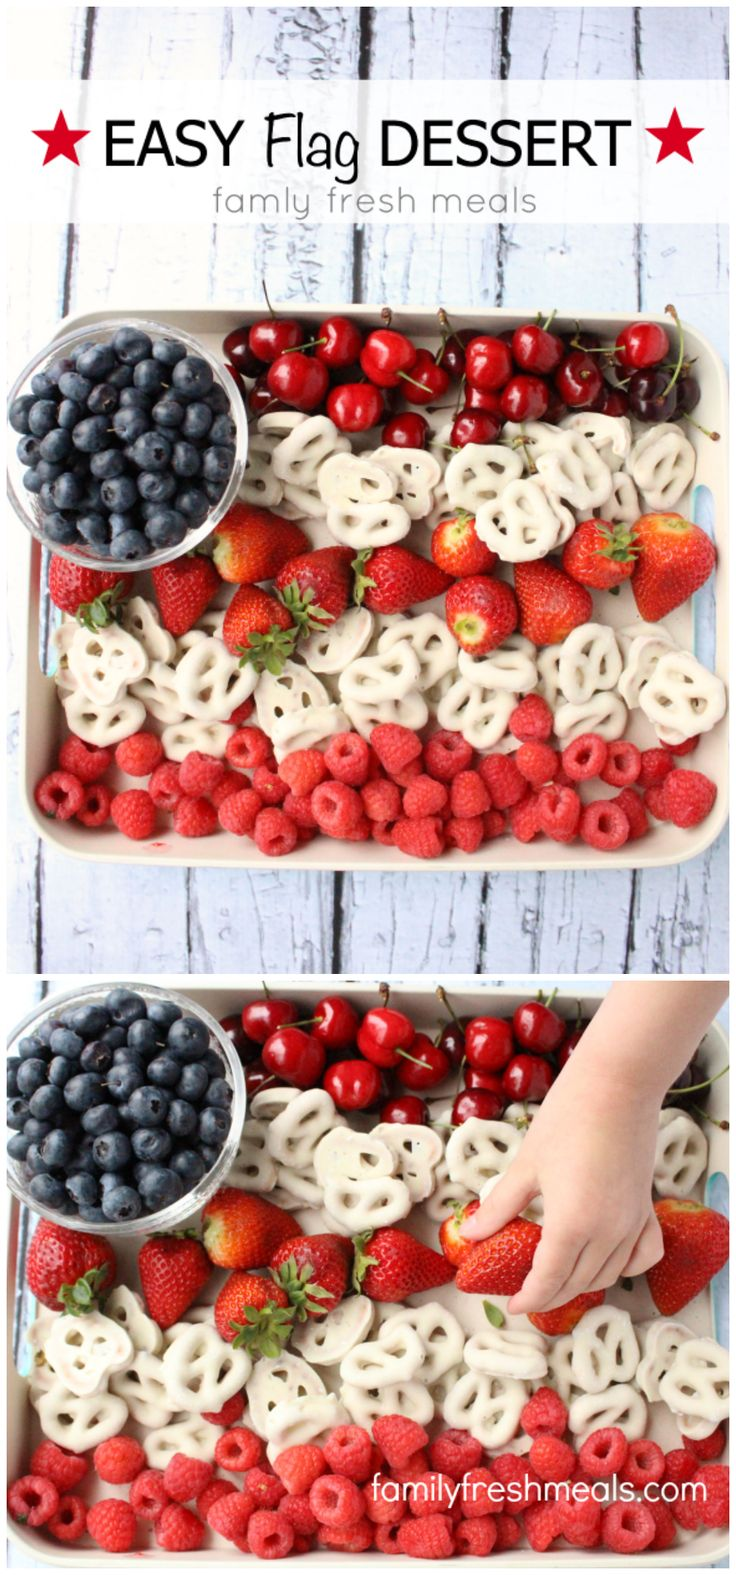 Easy Flag Fruit Dessert. Perfect patriotic dish for Memorial Day or Fourth of July! #july4th #celebrate